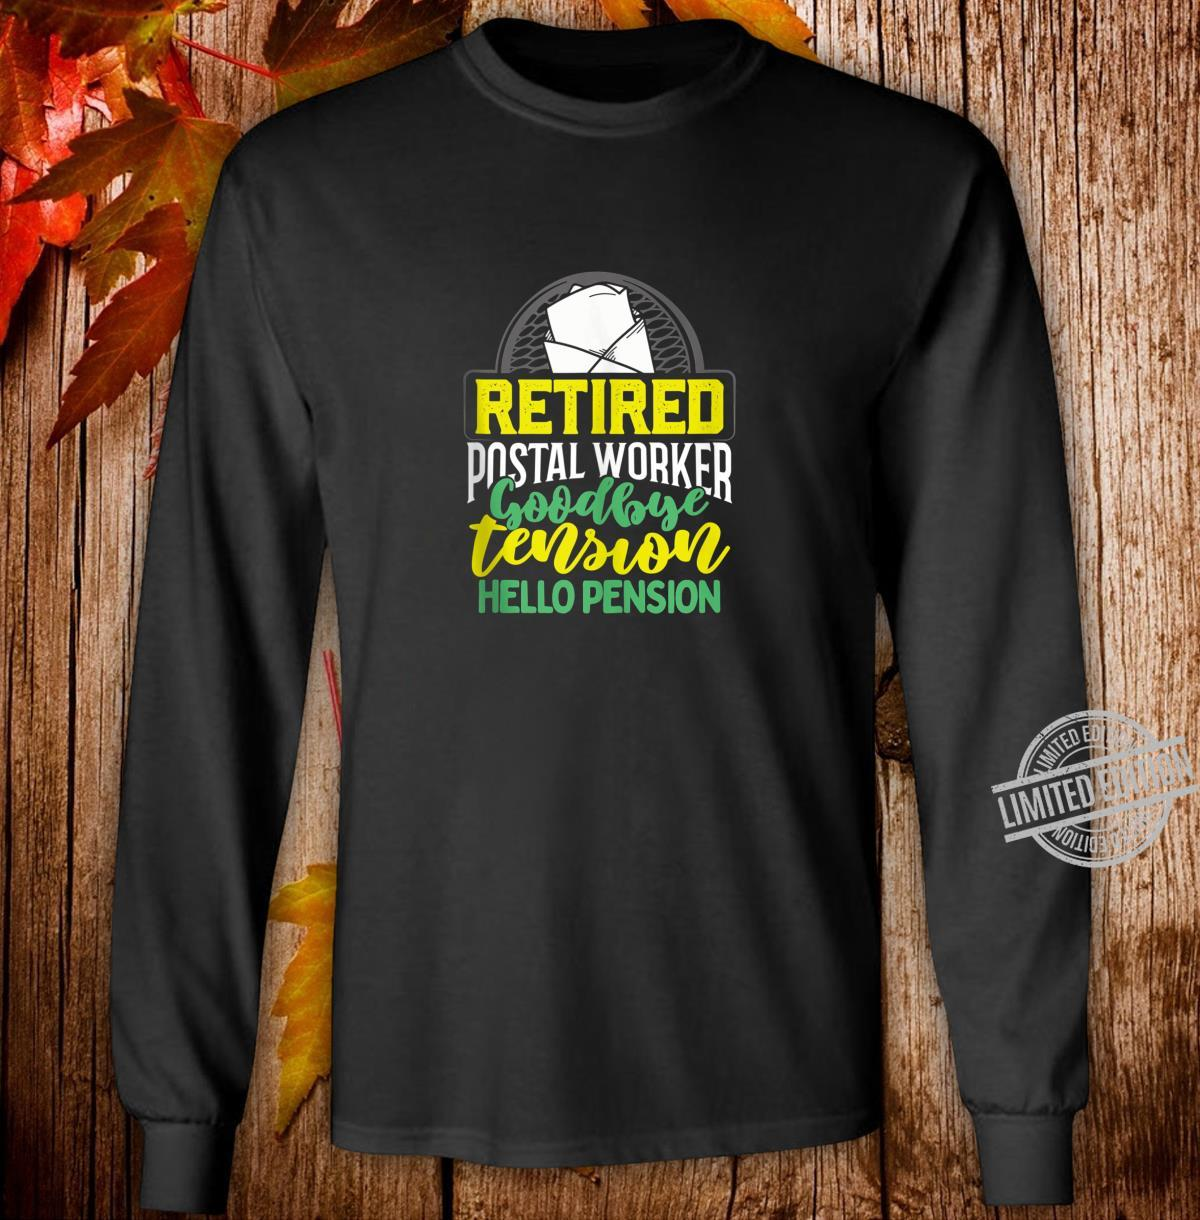 Funny Retirement Mailman Party Retired Postal Worker Shirt